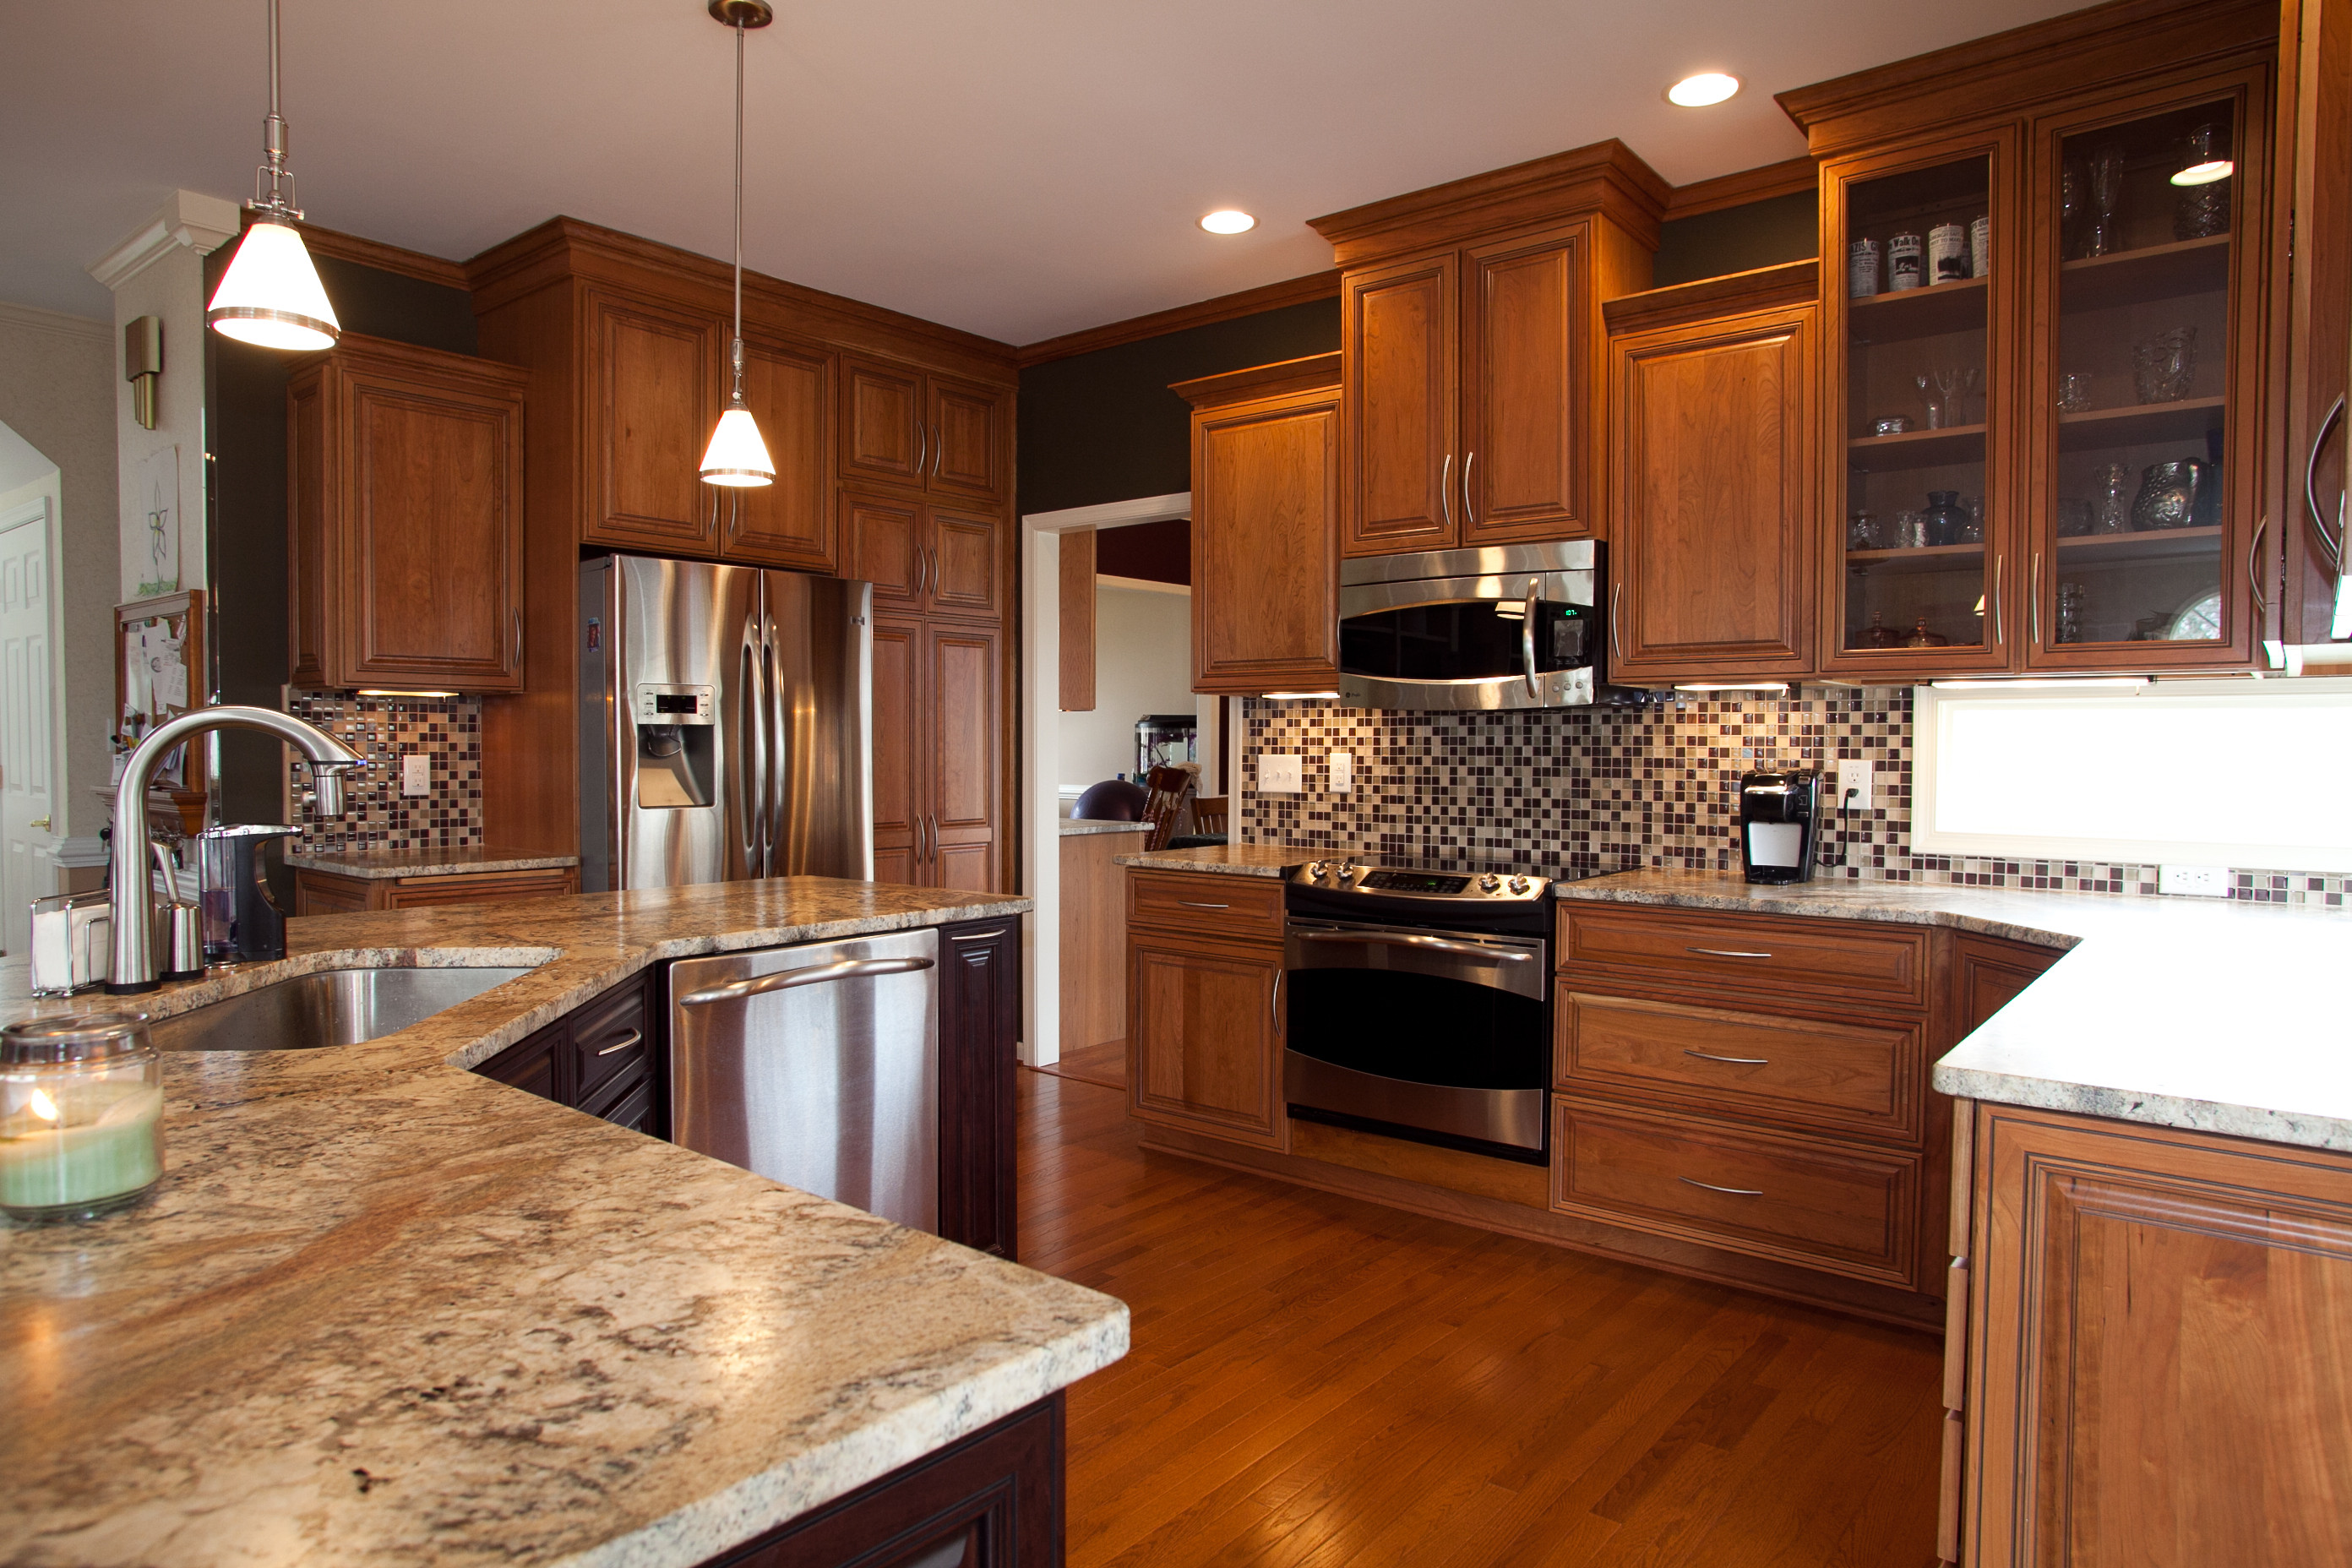 Best ideas about Remodel Kitchen Ideas . Save or Pin Kitchen Remodeling Contractor Now.